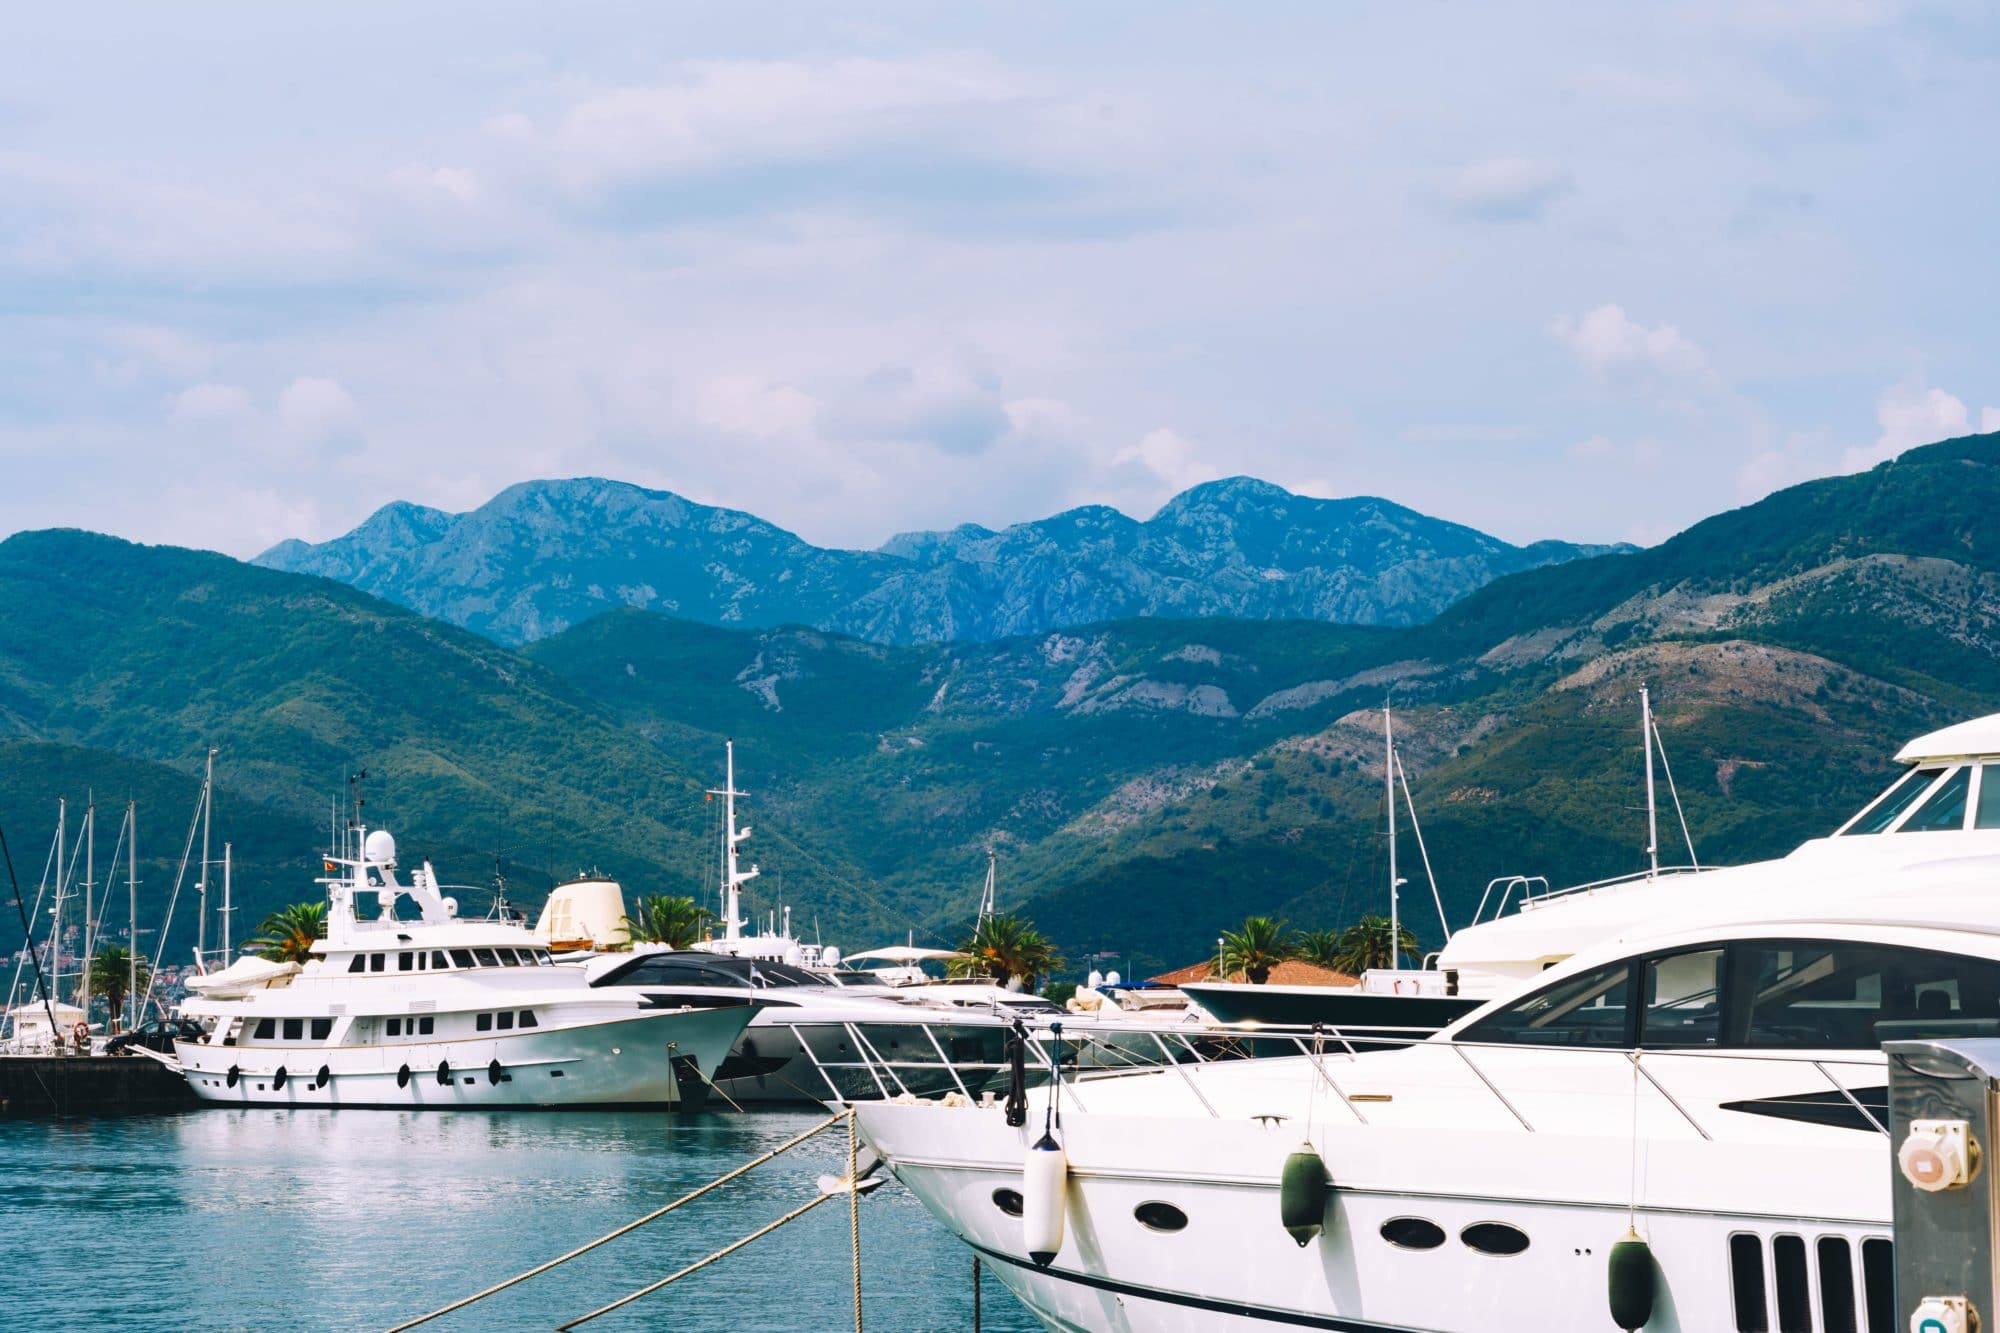 Luxury tourism development, especially for the yacht set, will surely lead to an increase in private banking options in Montenegro.